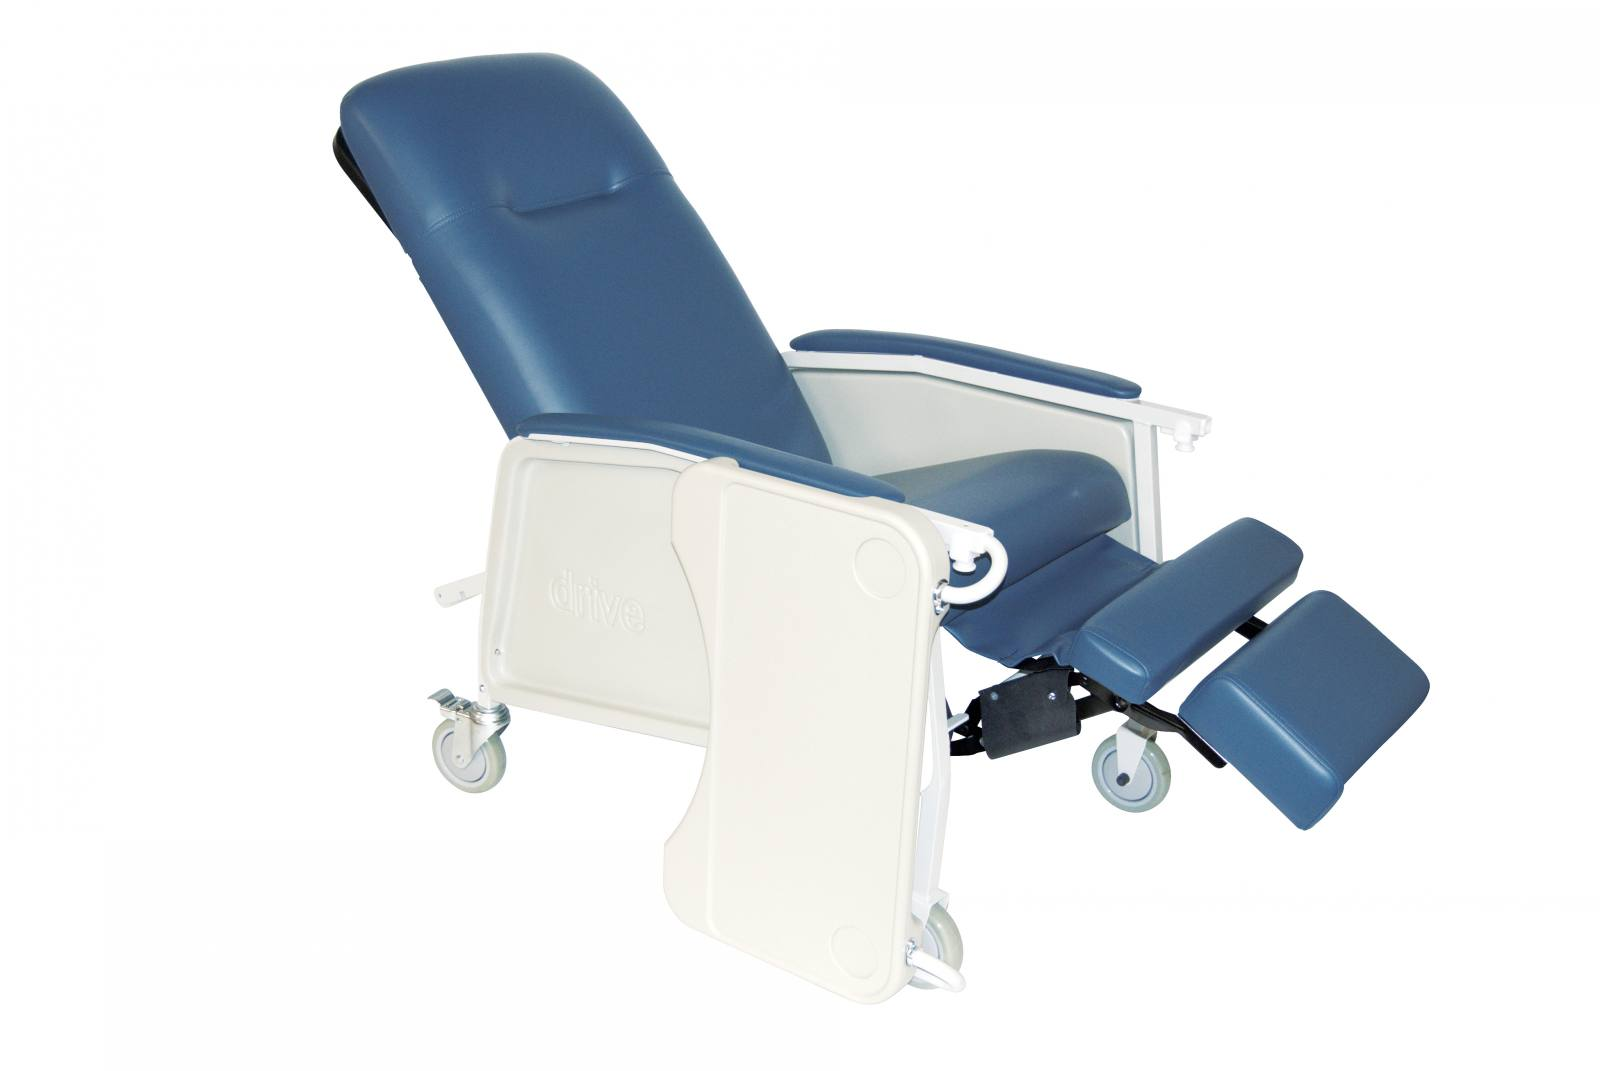 medical recliner chairs disposable plastic chair covers for parties drive 3 position bariatric from mark drug supply